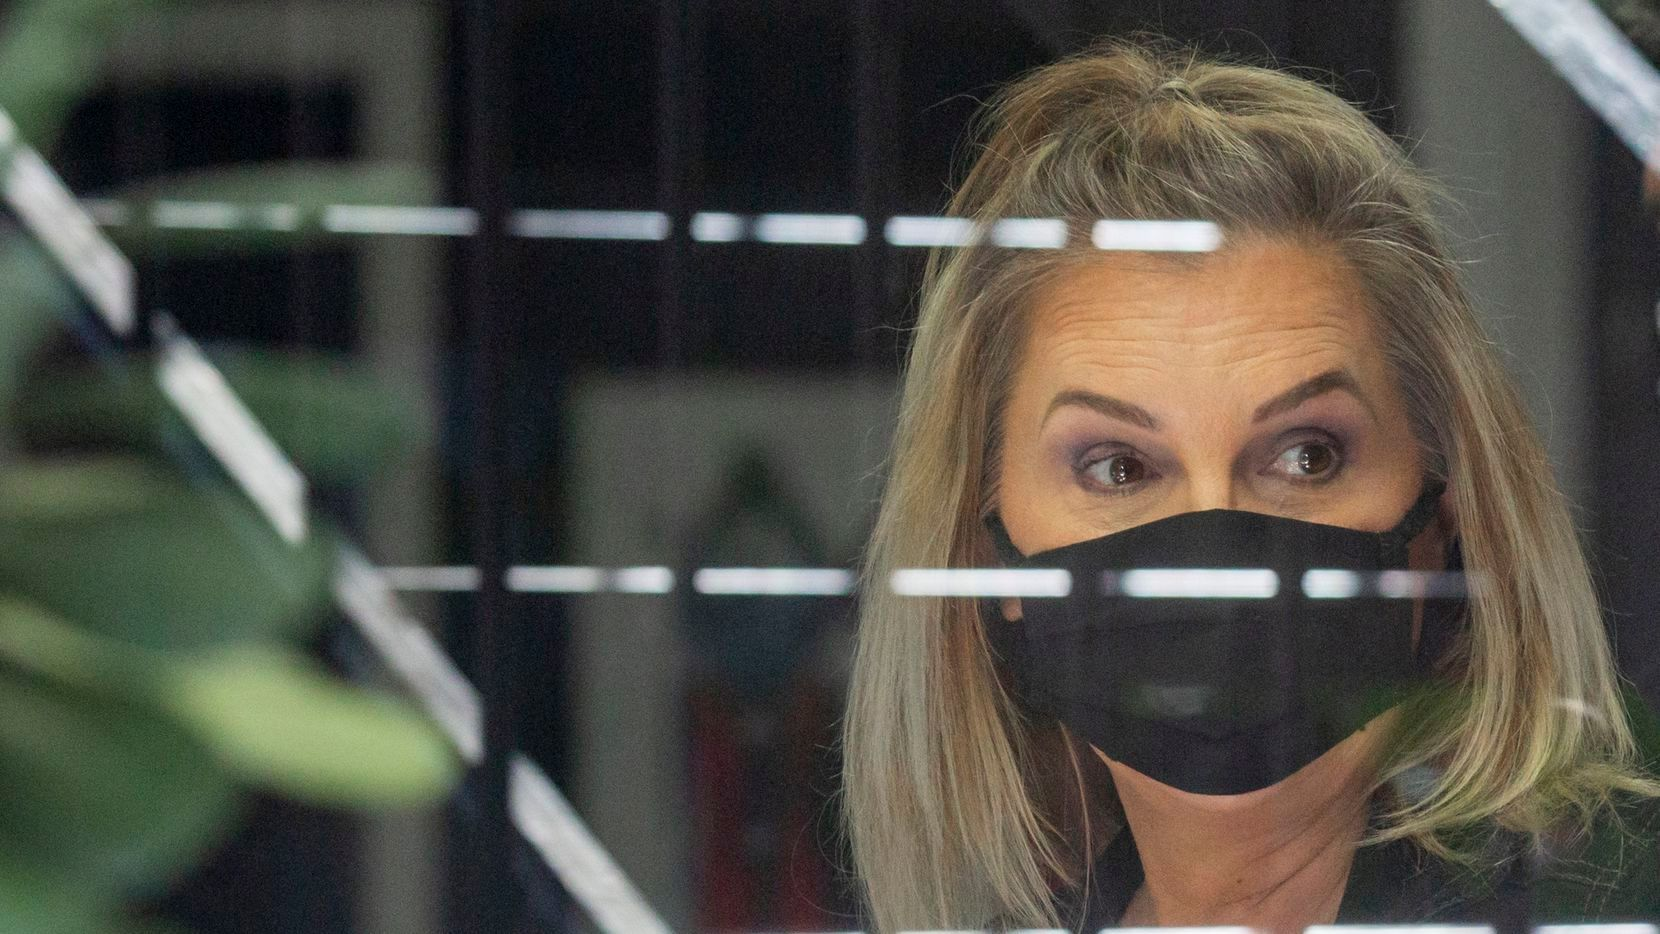 'Straight up wrong': Texas conservatives defend Dallas salon owner jailed for keeping open business amid coronavirus